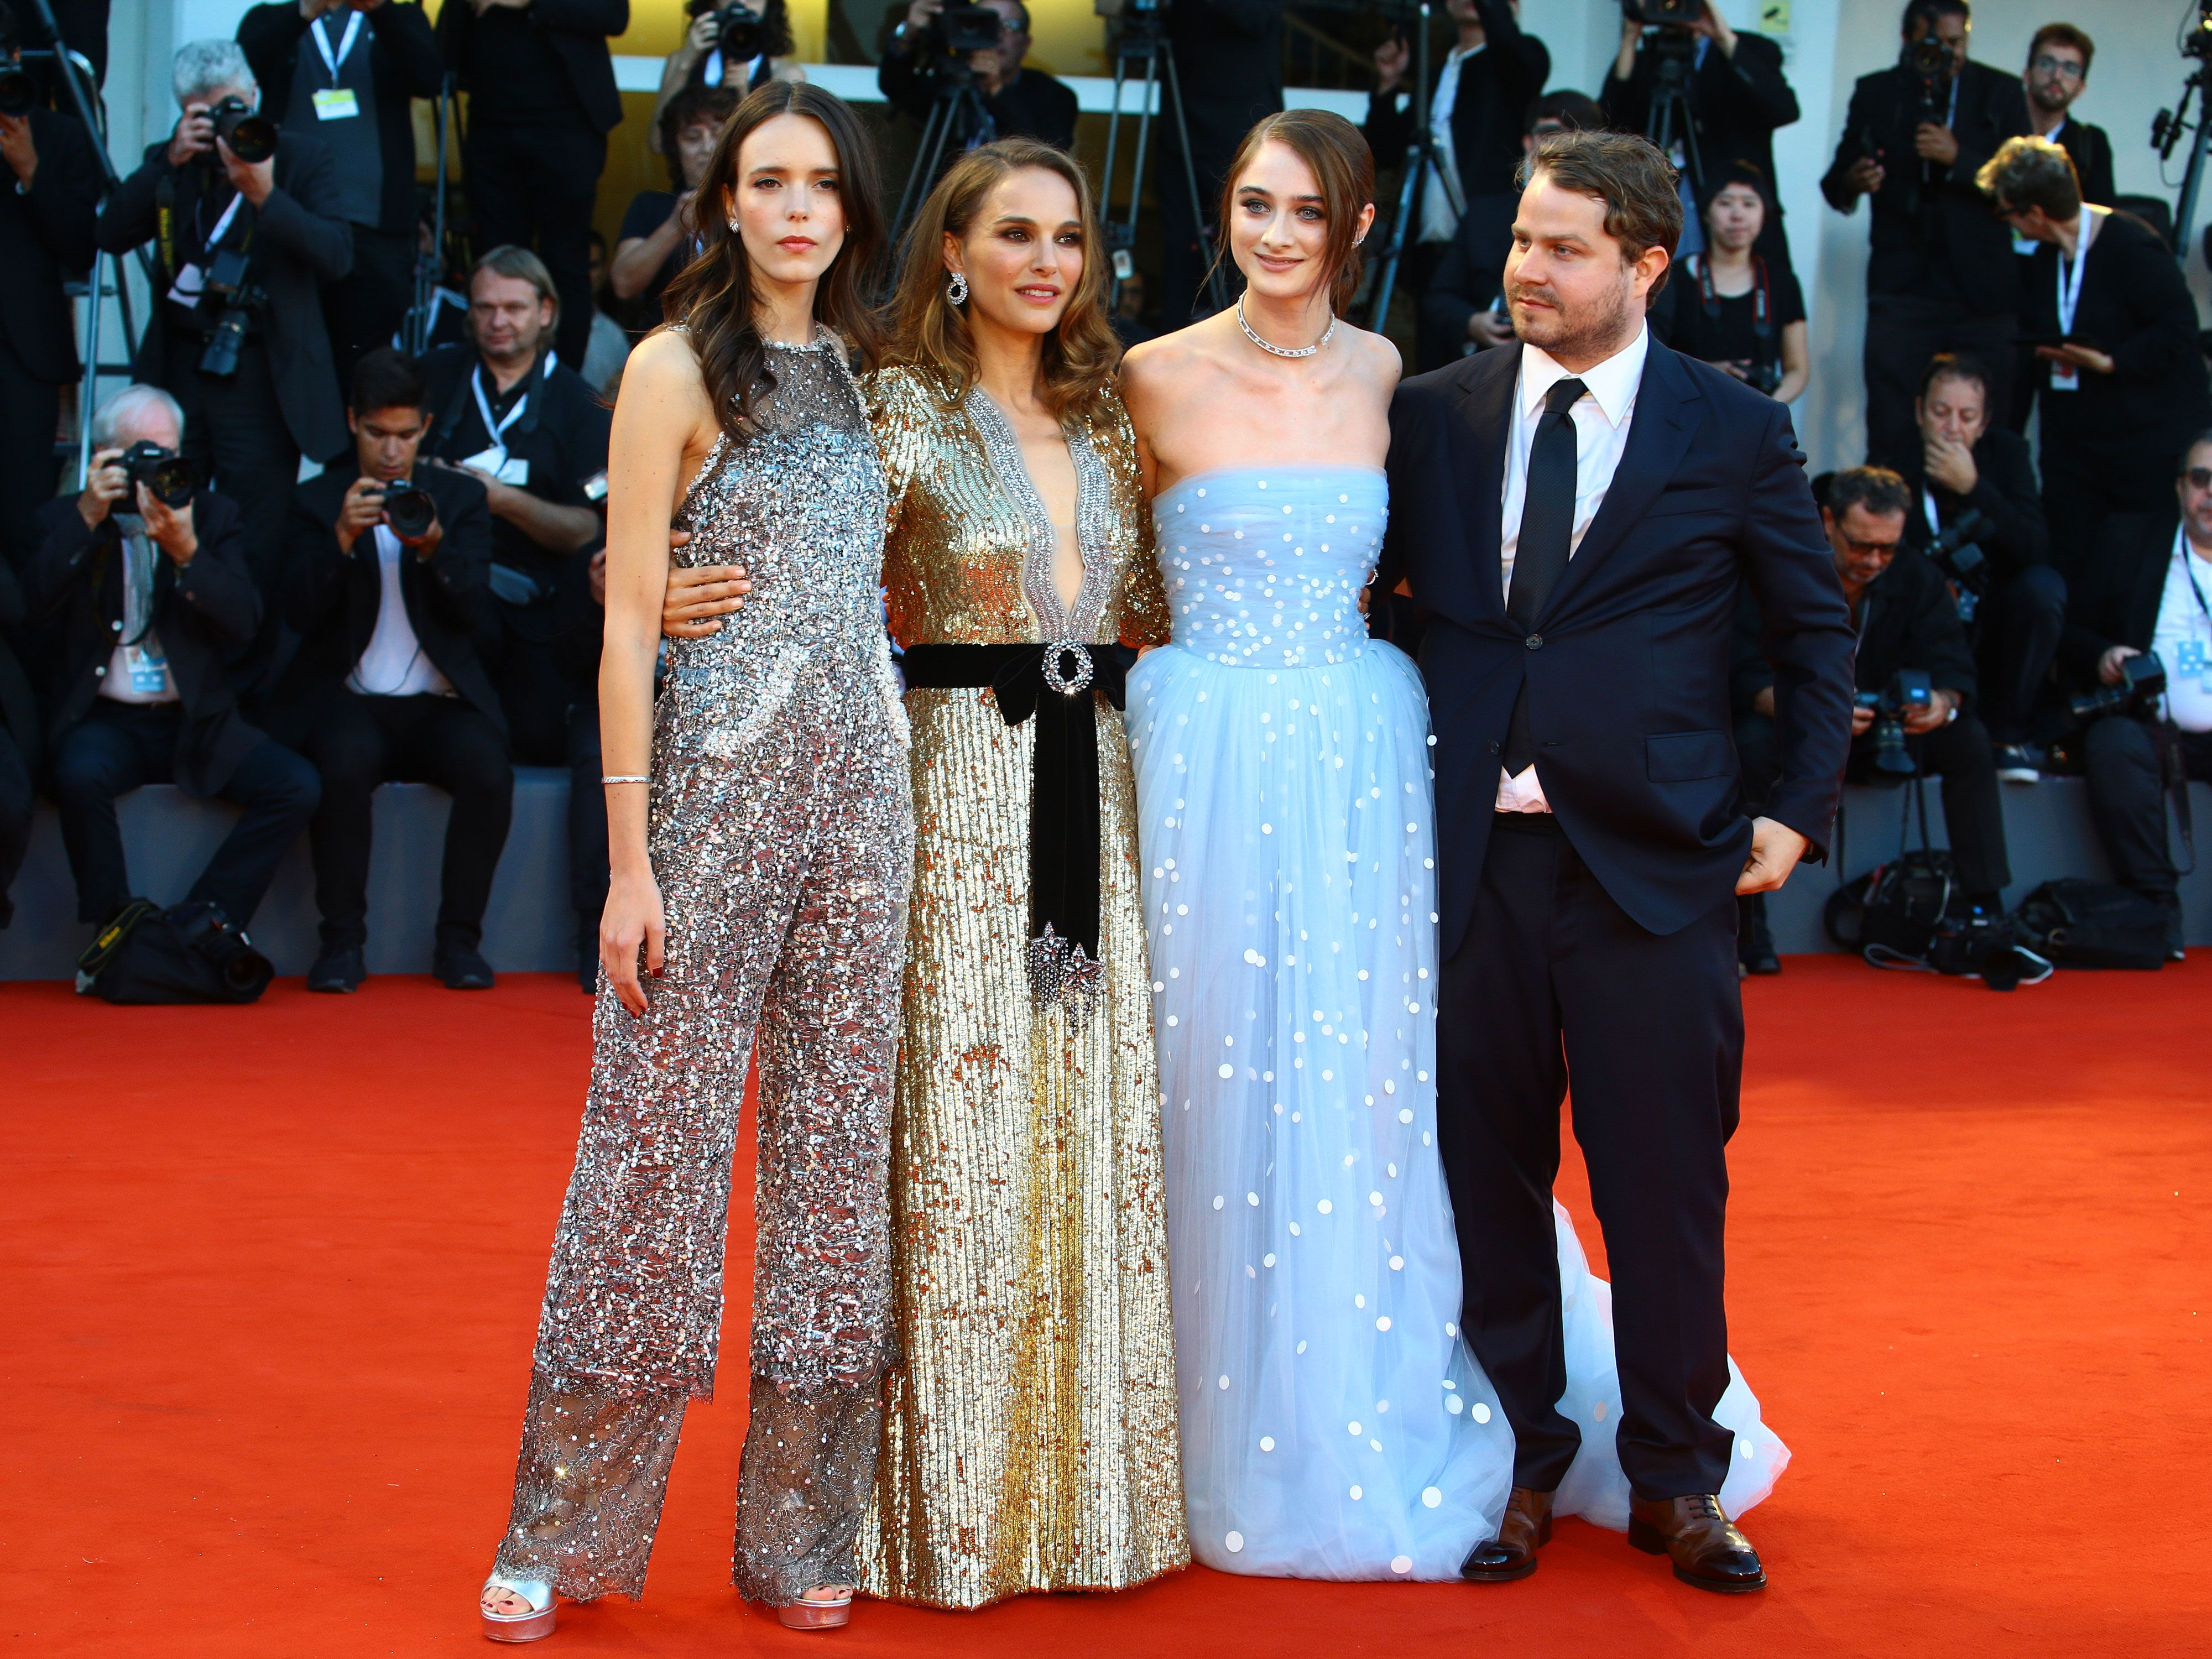 2bcb4717ce Natalie Portman helped her co-star with a wardrobe malfunction on the red  carpet